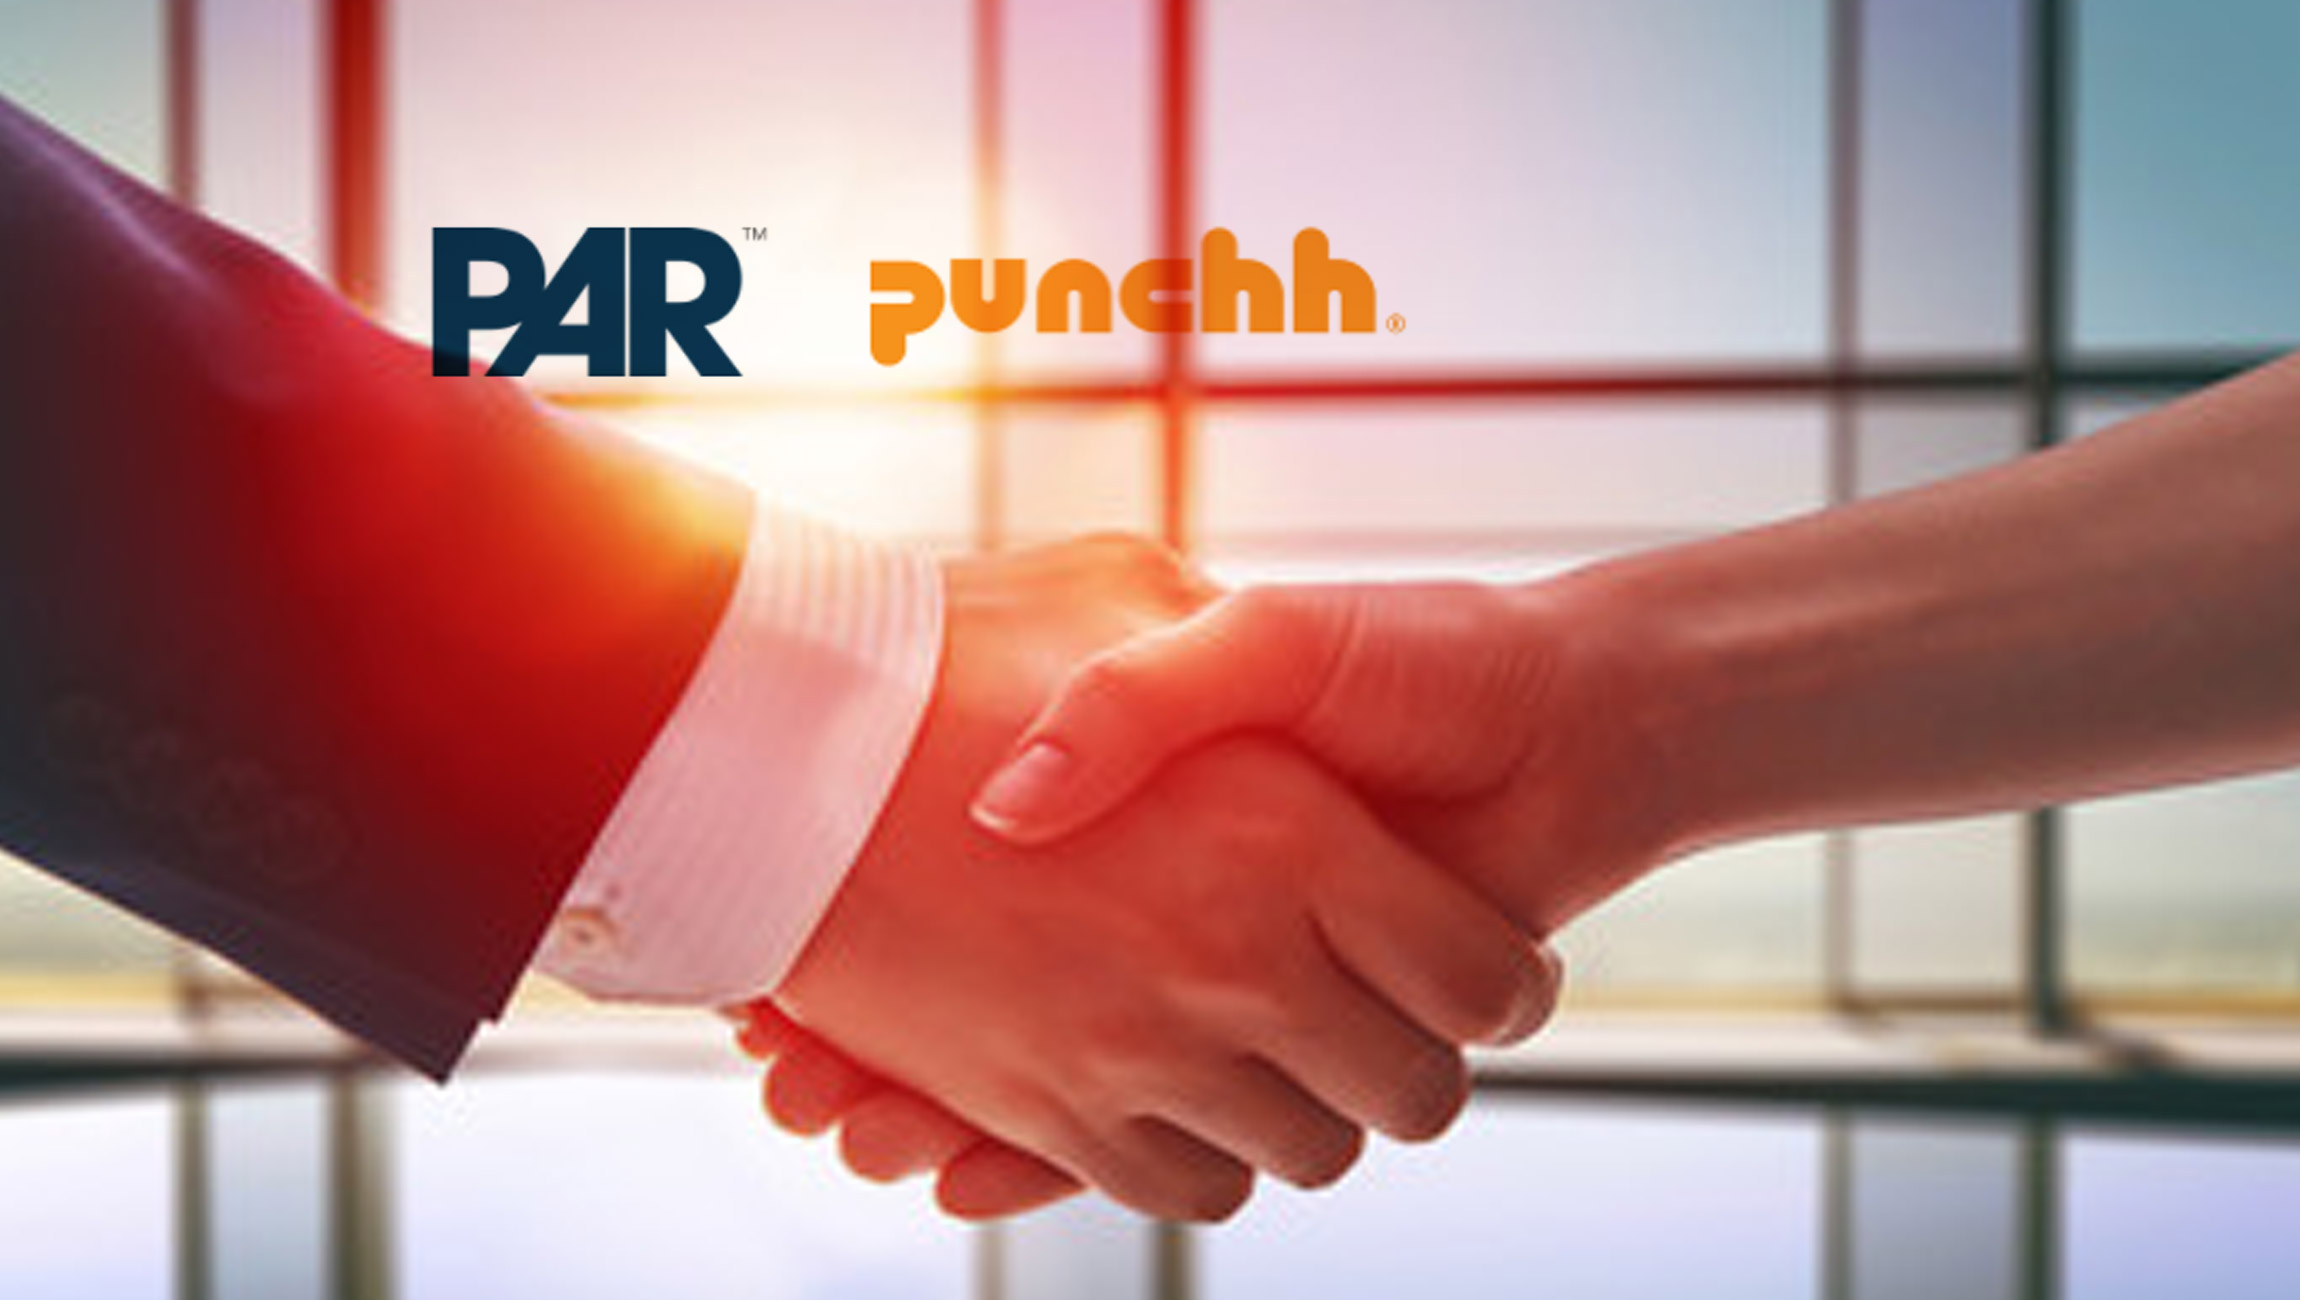 PAR Technology Corporation Acquires Leading Loyalty Provider Punchh Inc. For $500MM, Becoming A Unified Commerce Cloud Platform For Enterprise Restaurants